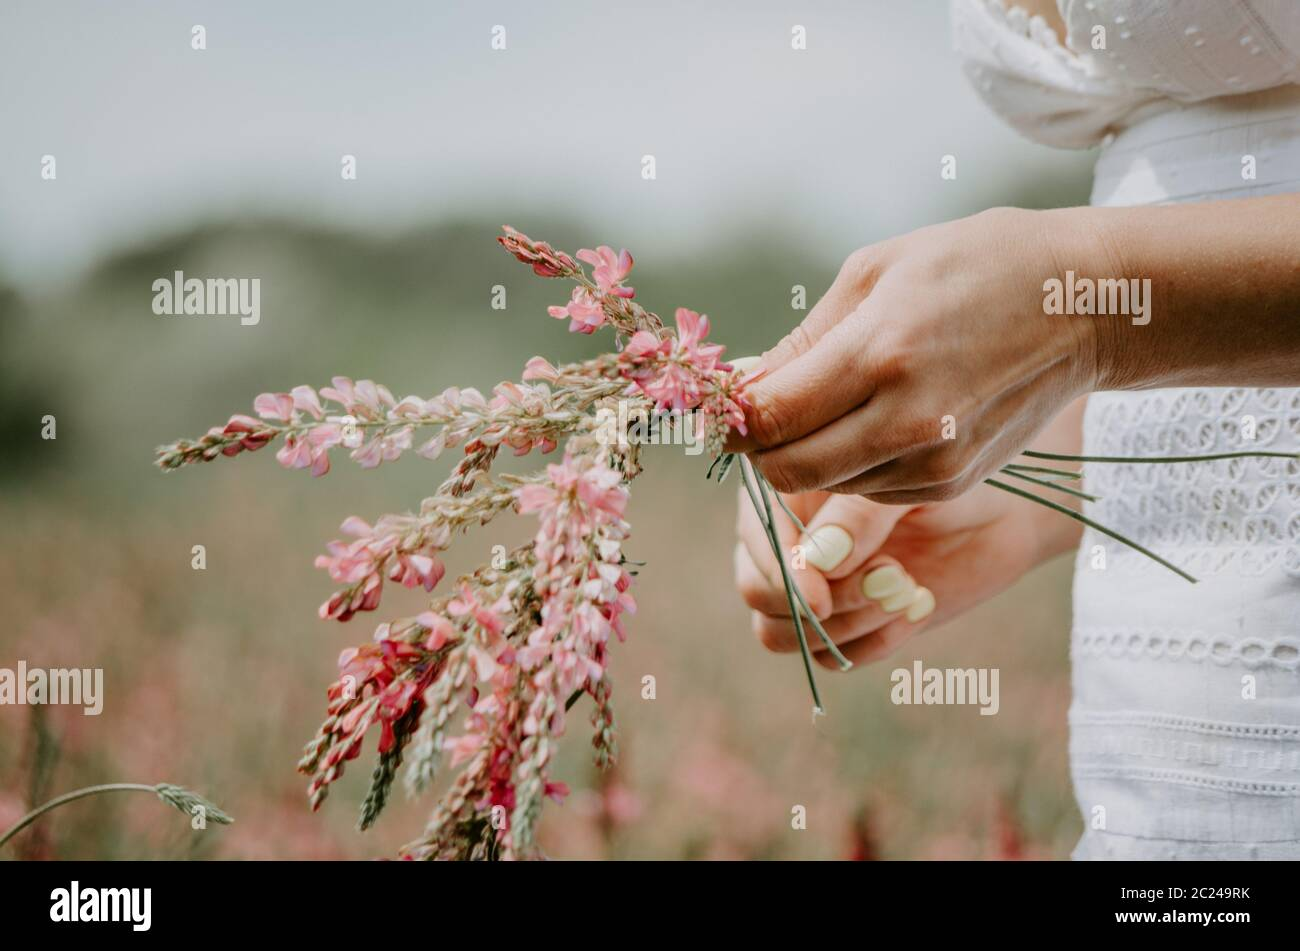 Close up of a woman's hands braiding wild flowers into a flower crown Stock Photo